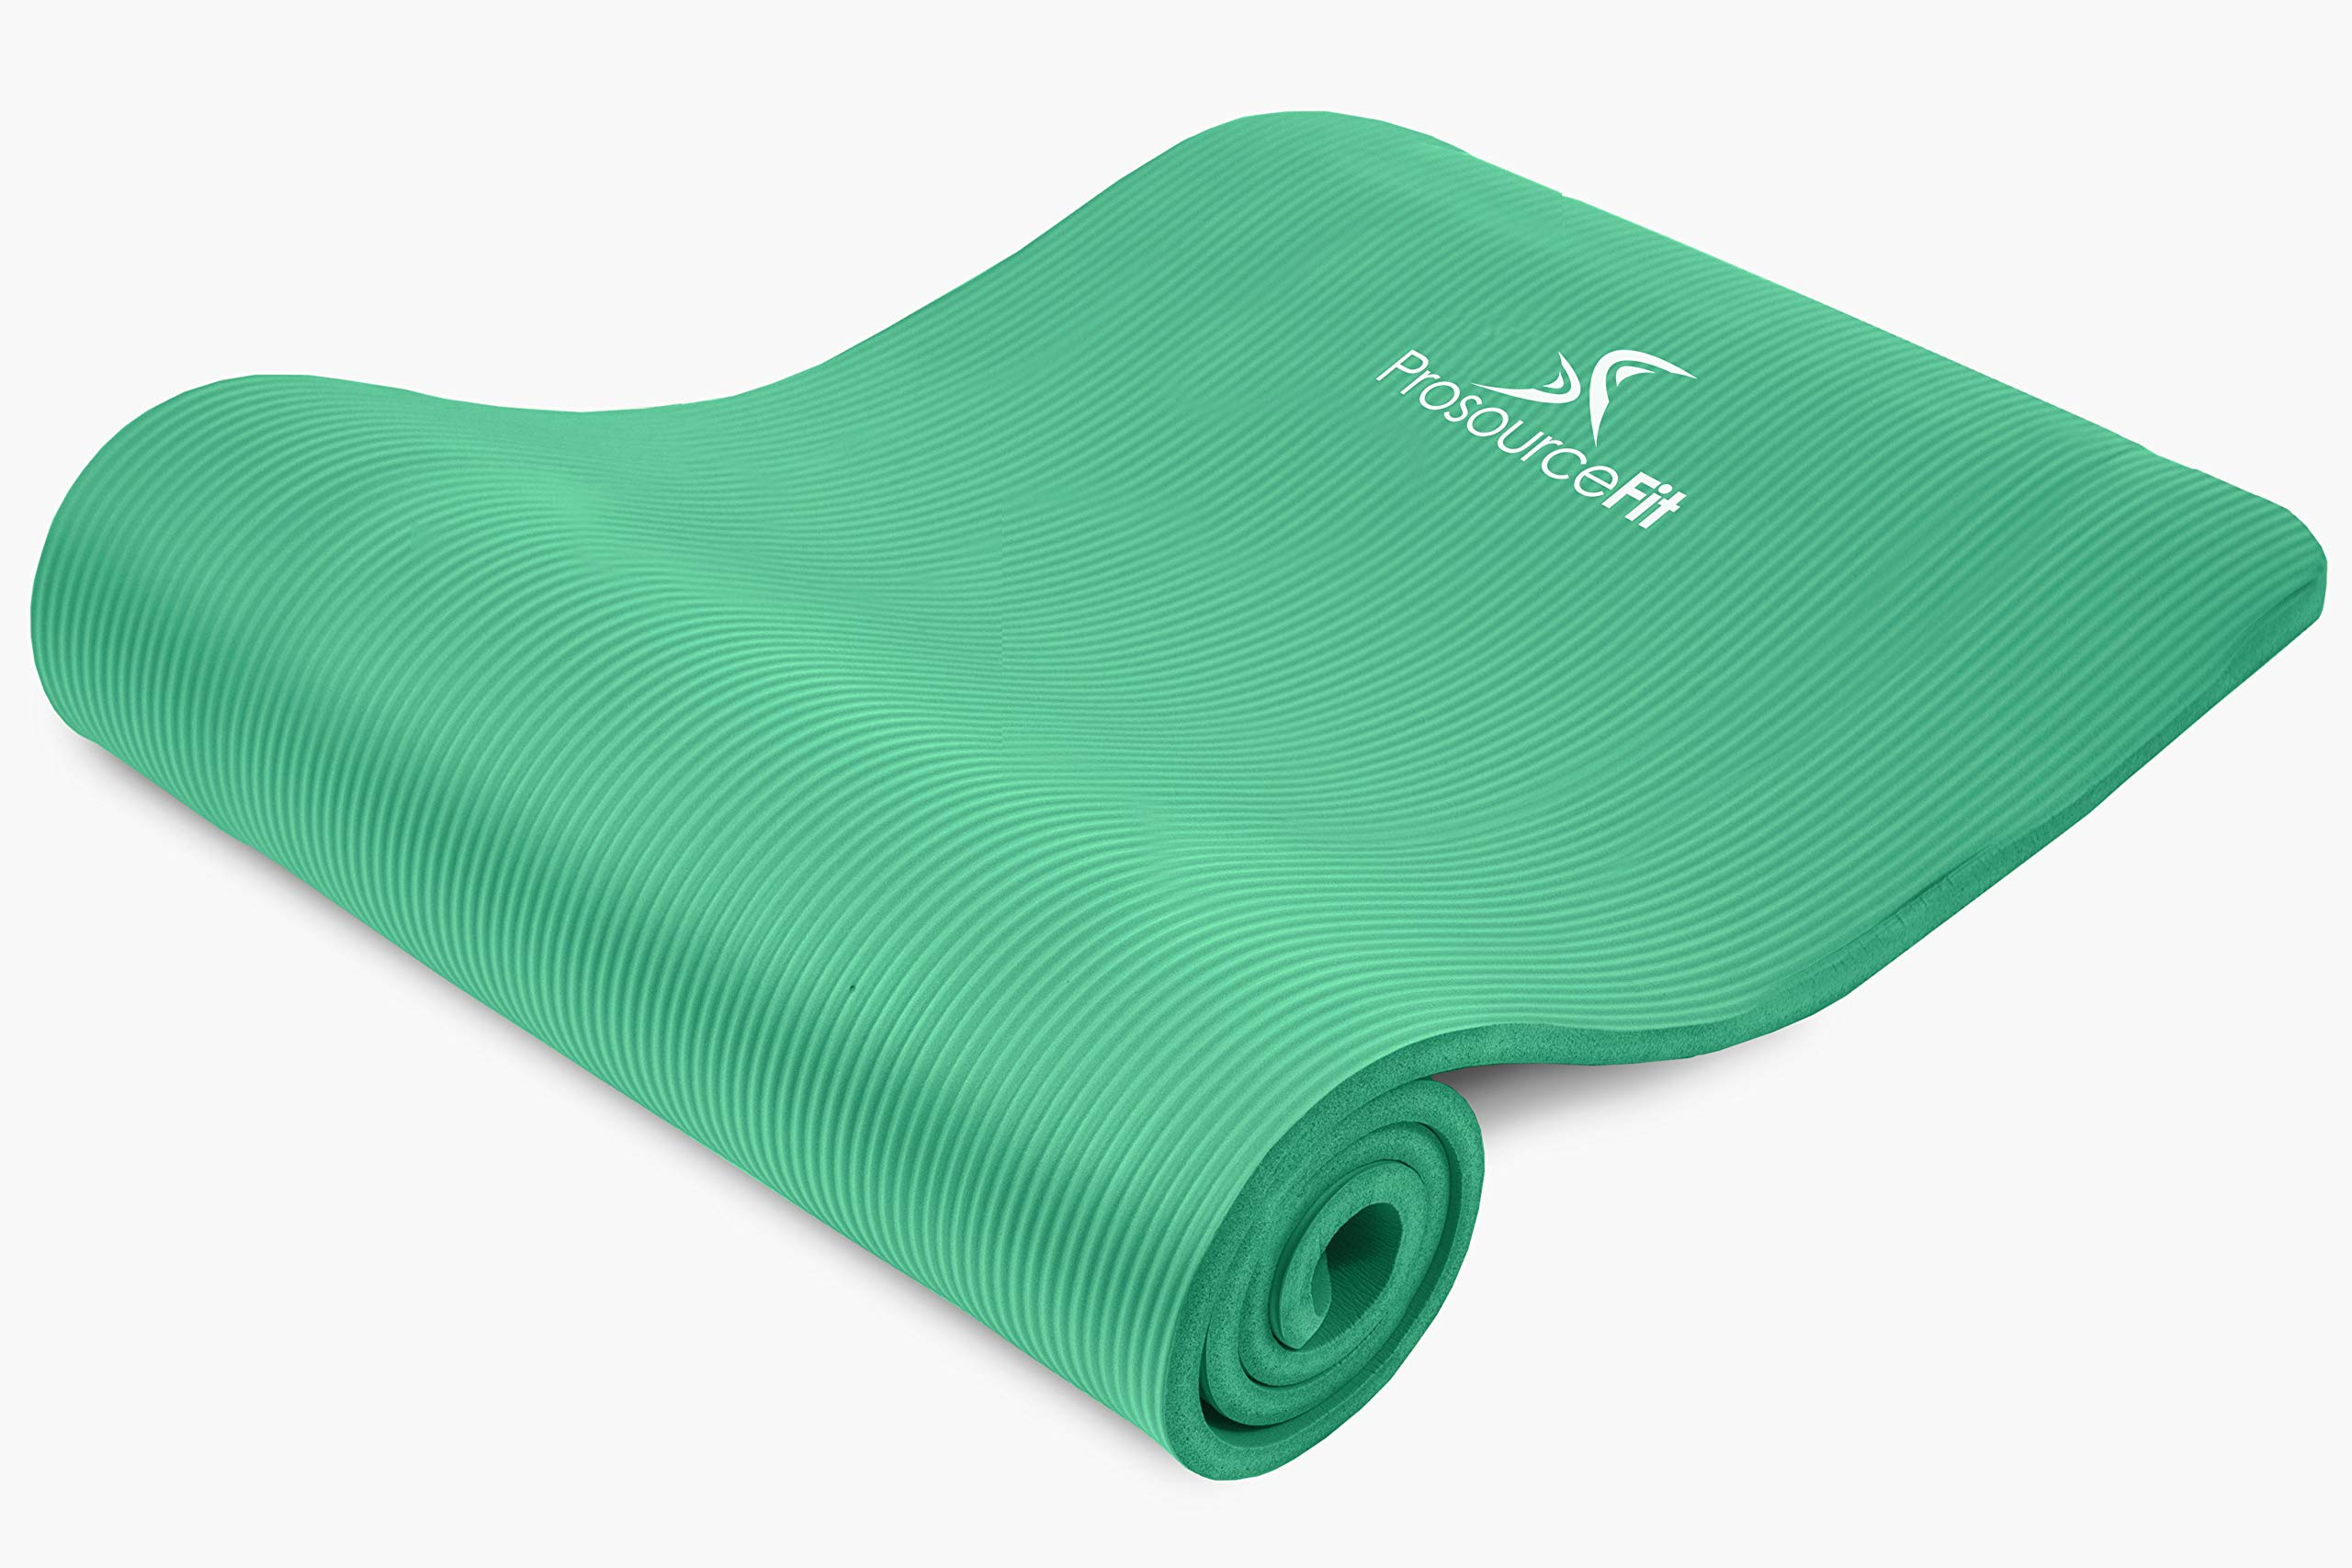 ProsourceFit Extra Thick Yoga and Pilates Mat ½'' (13mm), 71-inch Long High Density Exercise Mat with Comfort Foam and Carrying Strap, Green